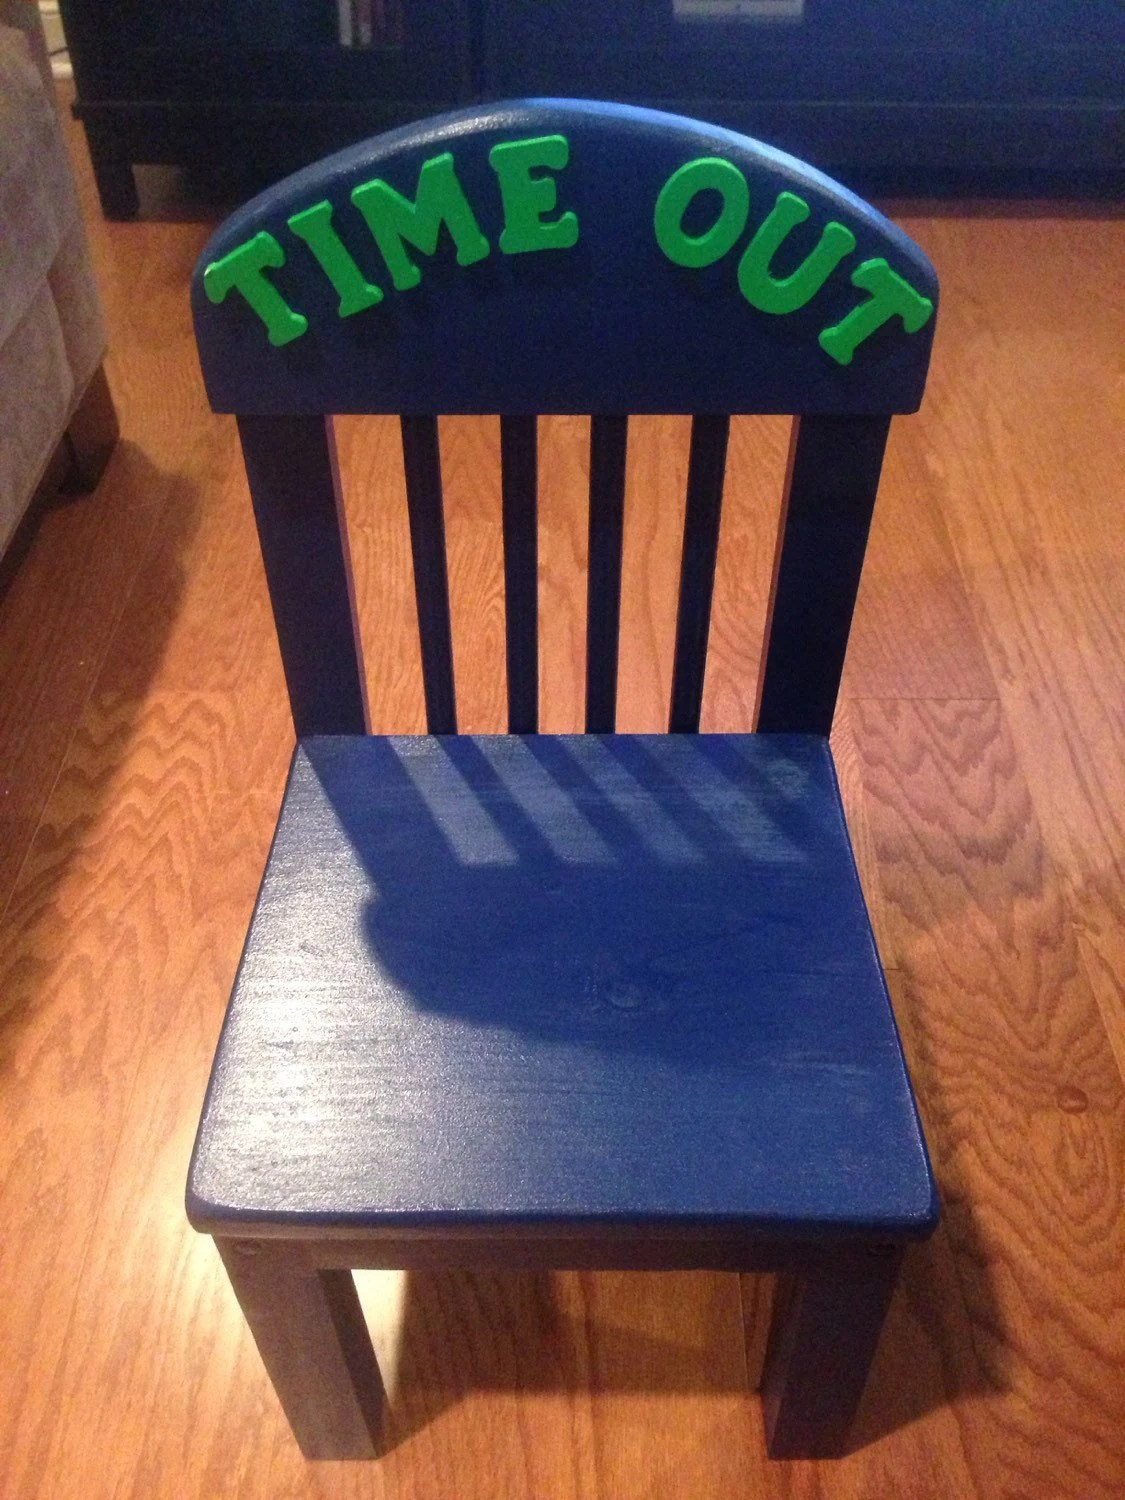 kids time out chair desk office max wooden with timer navy green letters